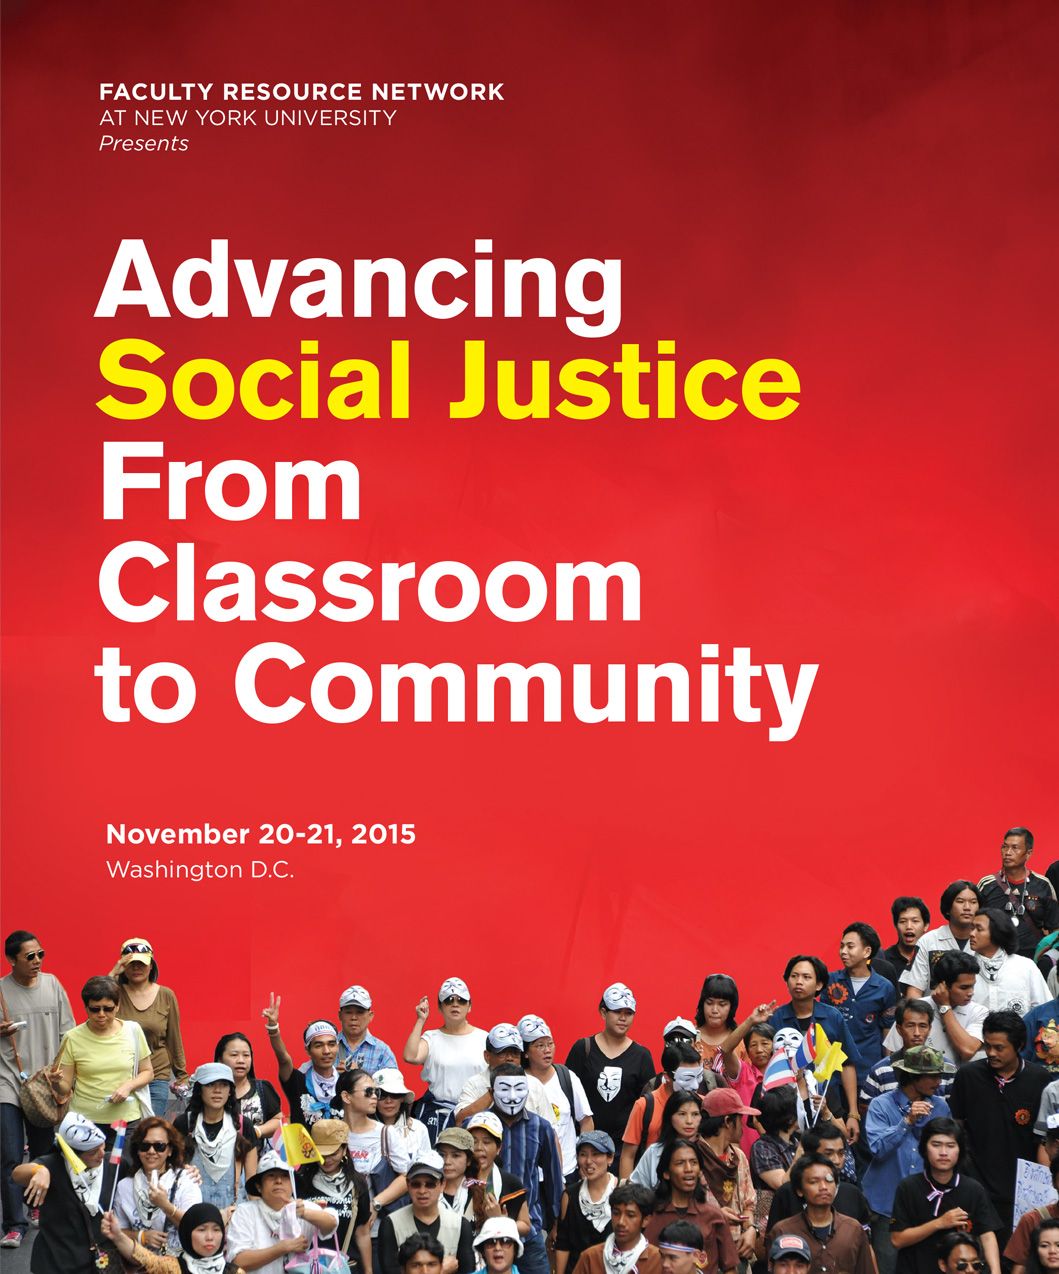 Advancing Social Justice from Classroom to Community